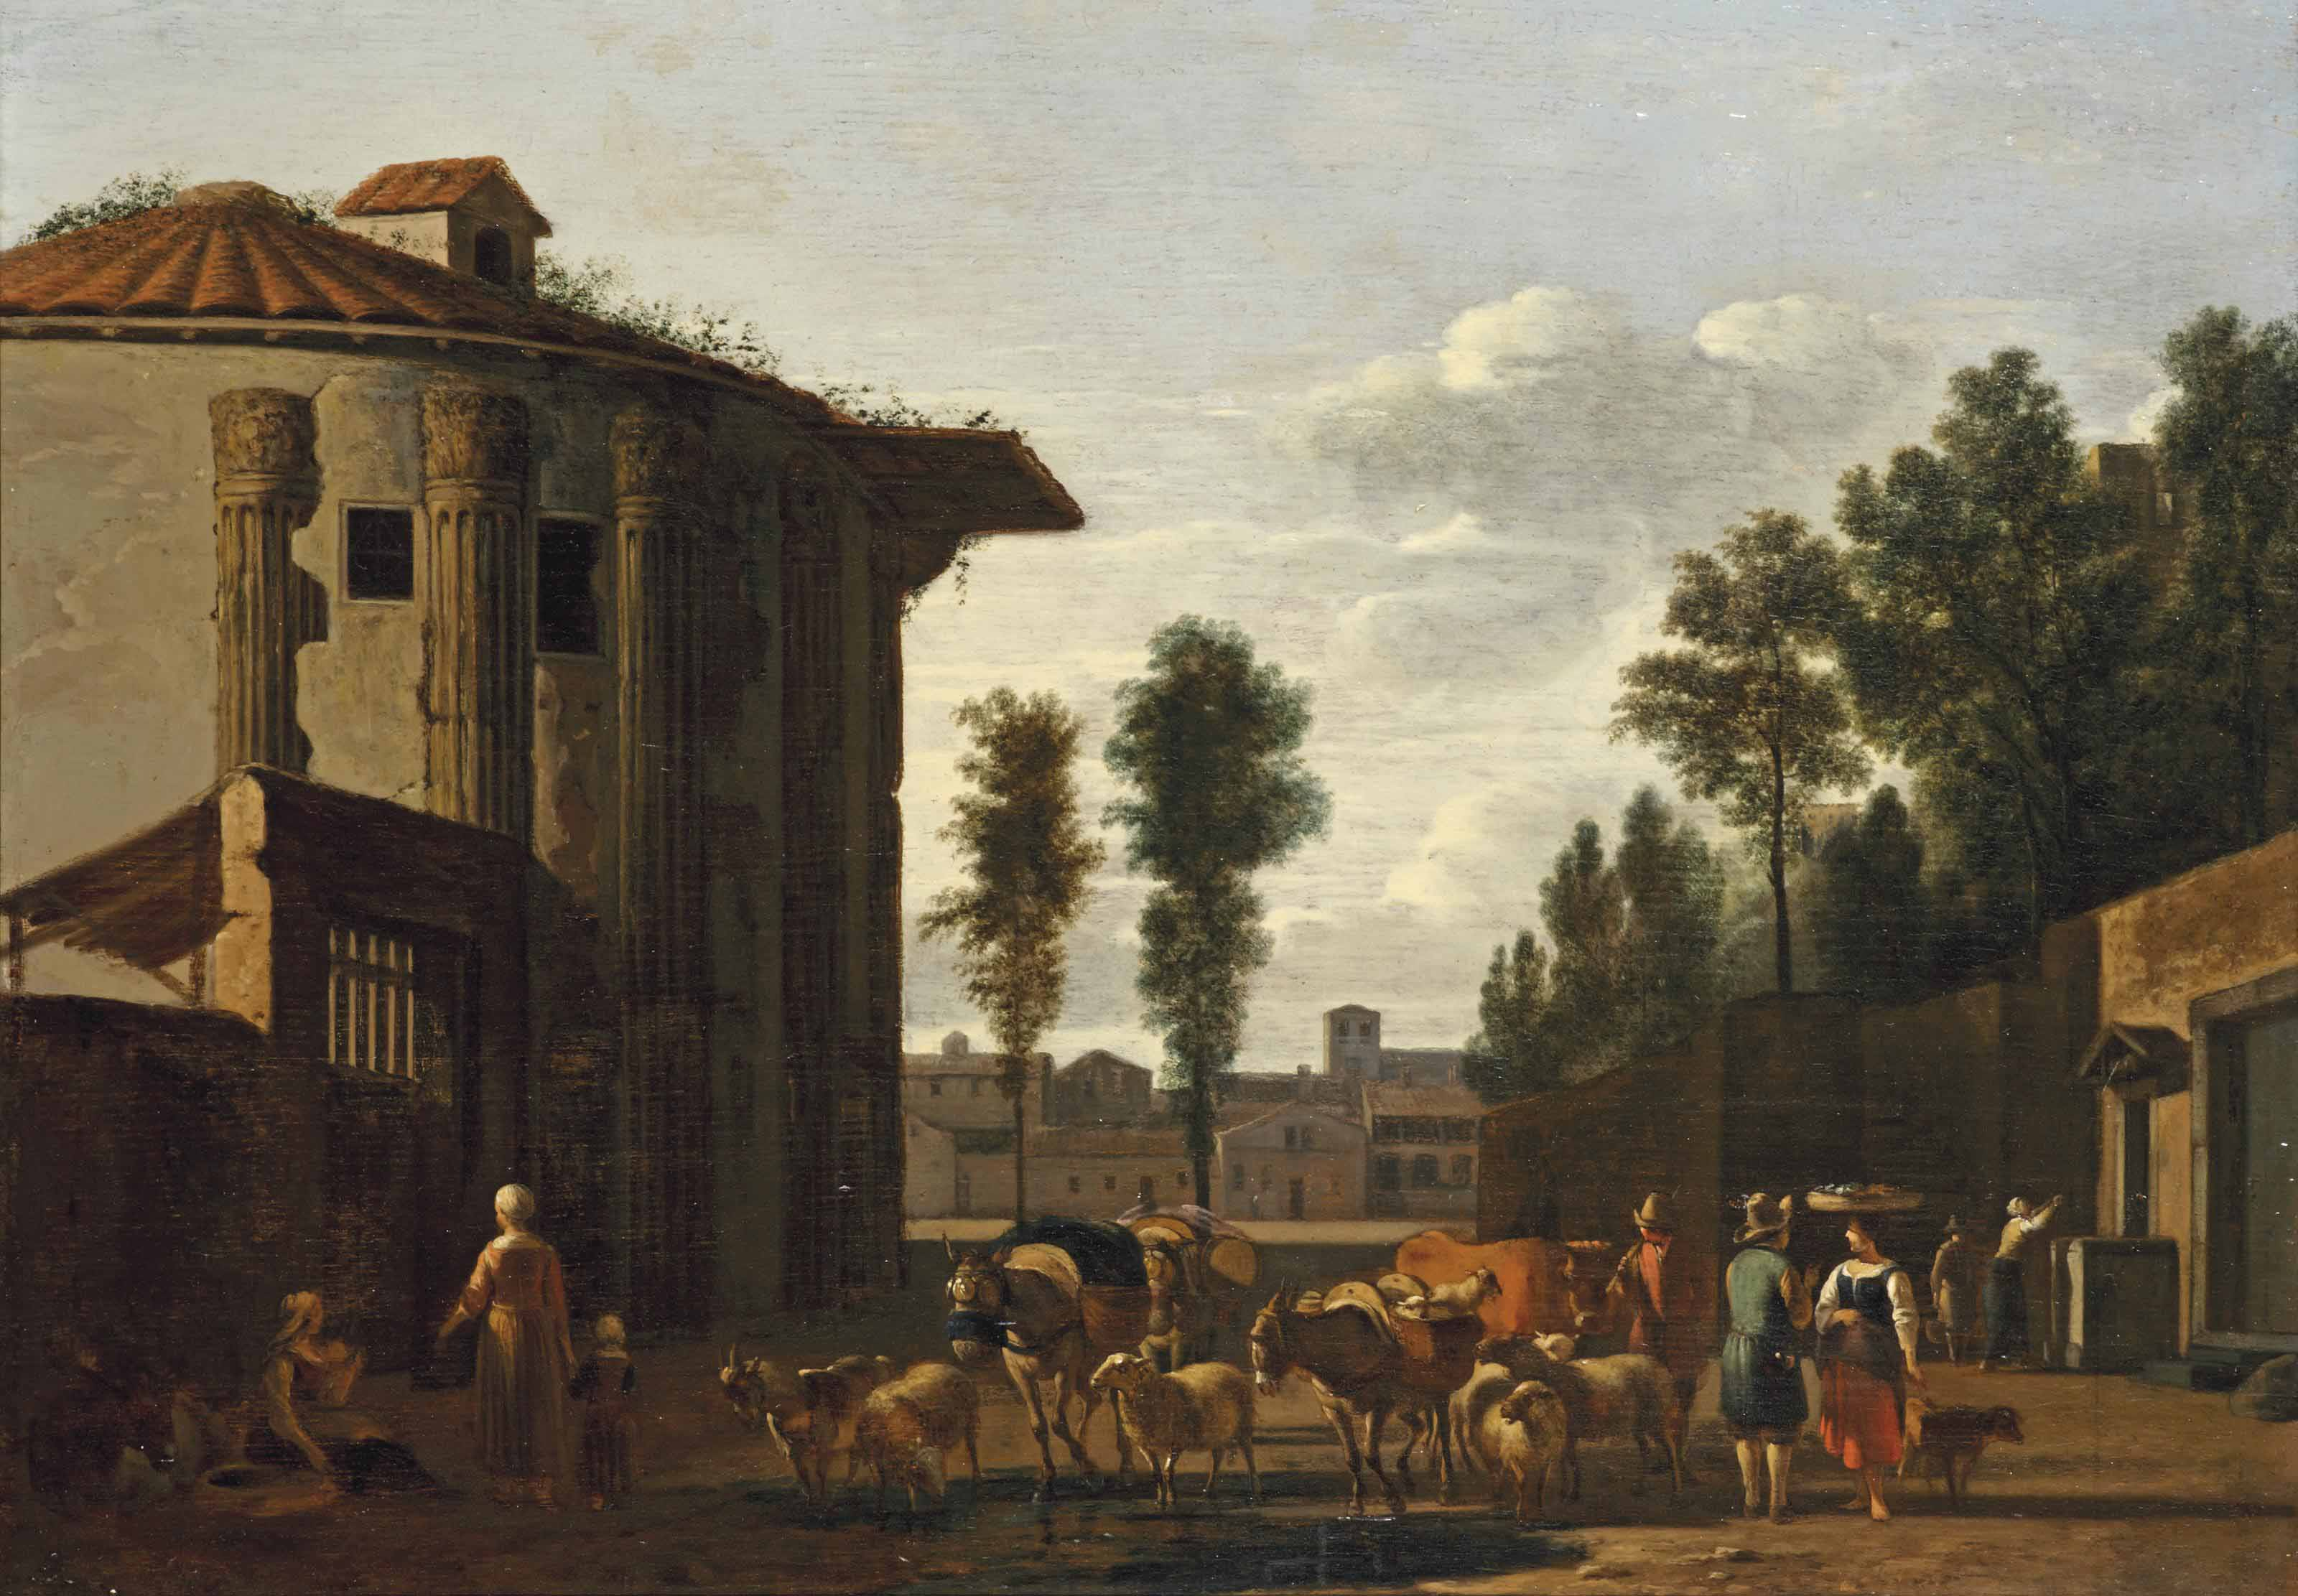 The Temple of Vesta, Rome, with a herdsman and other figures